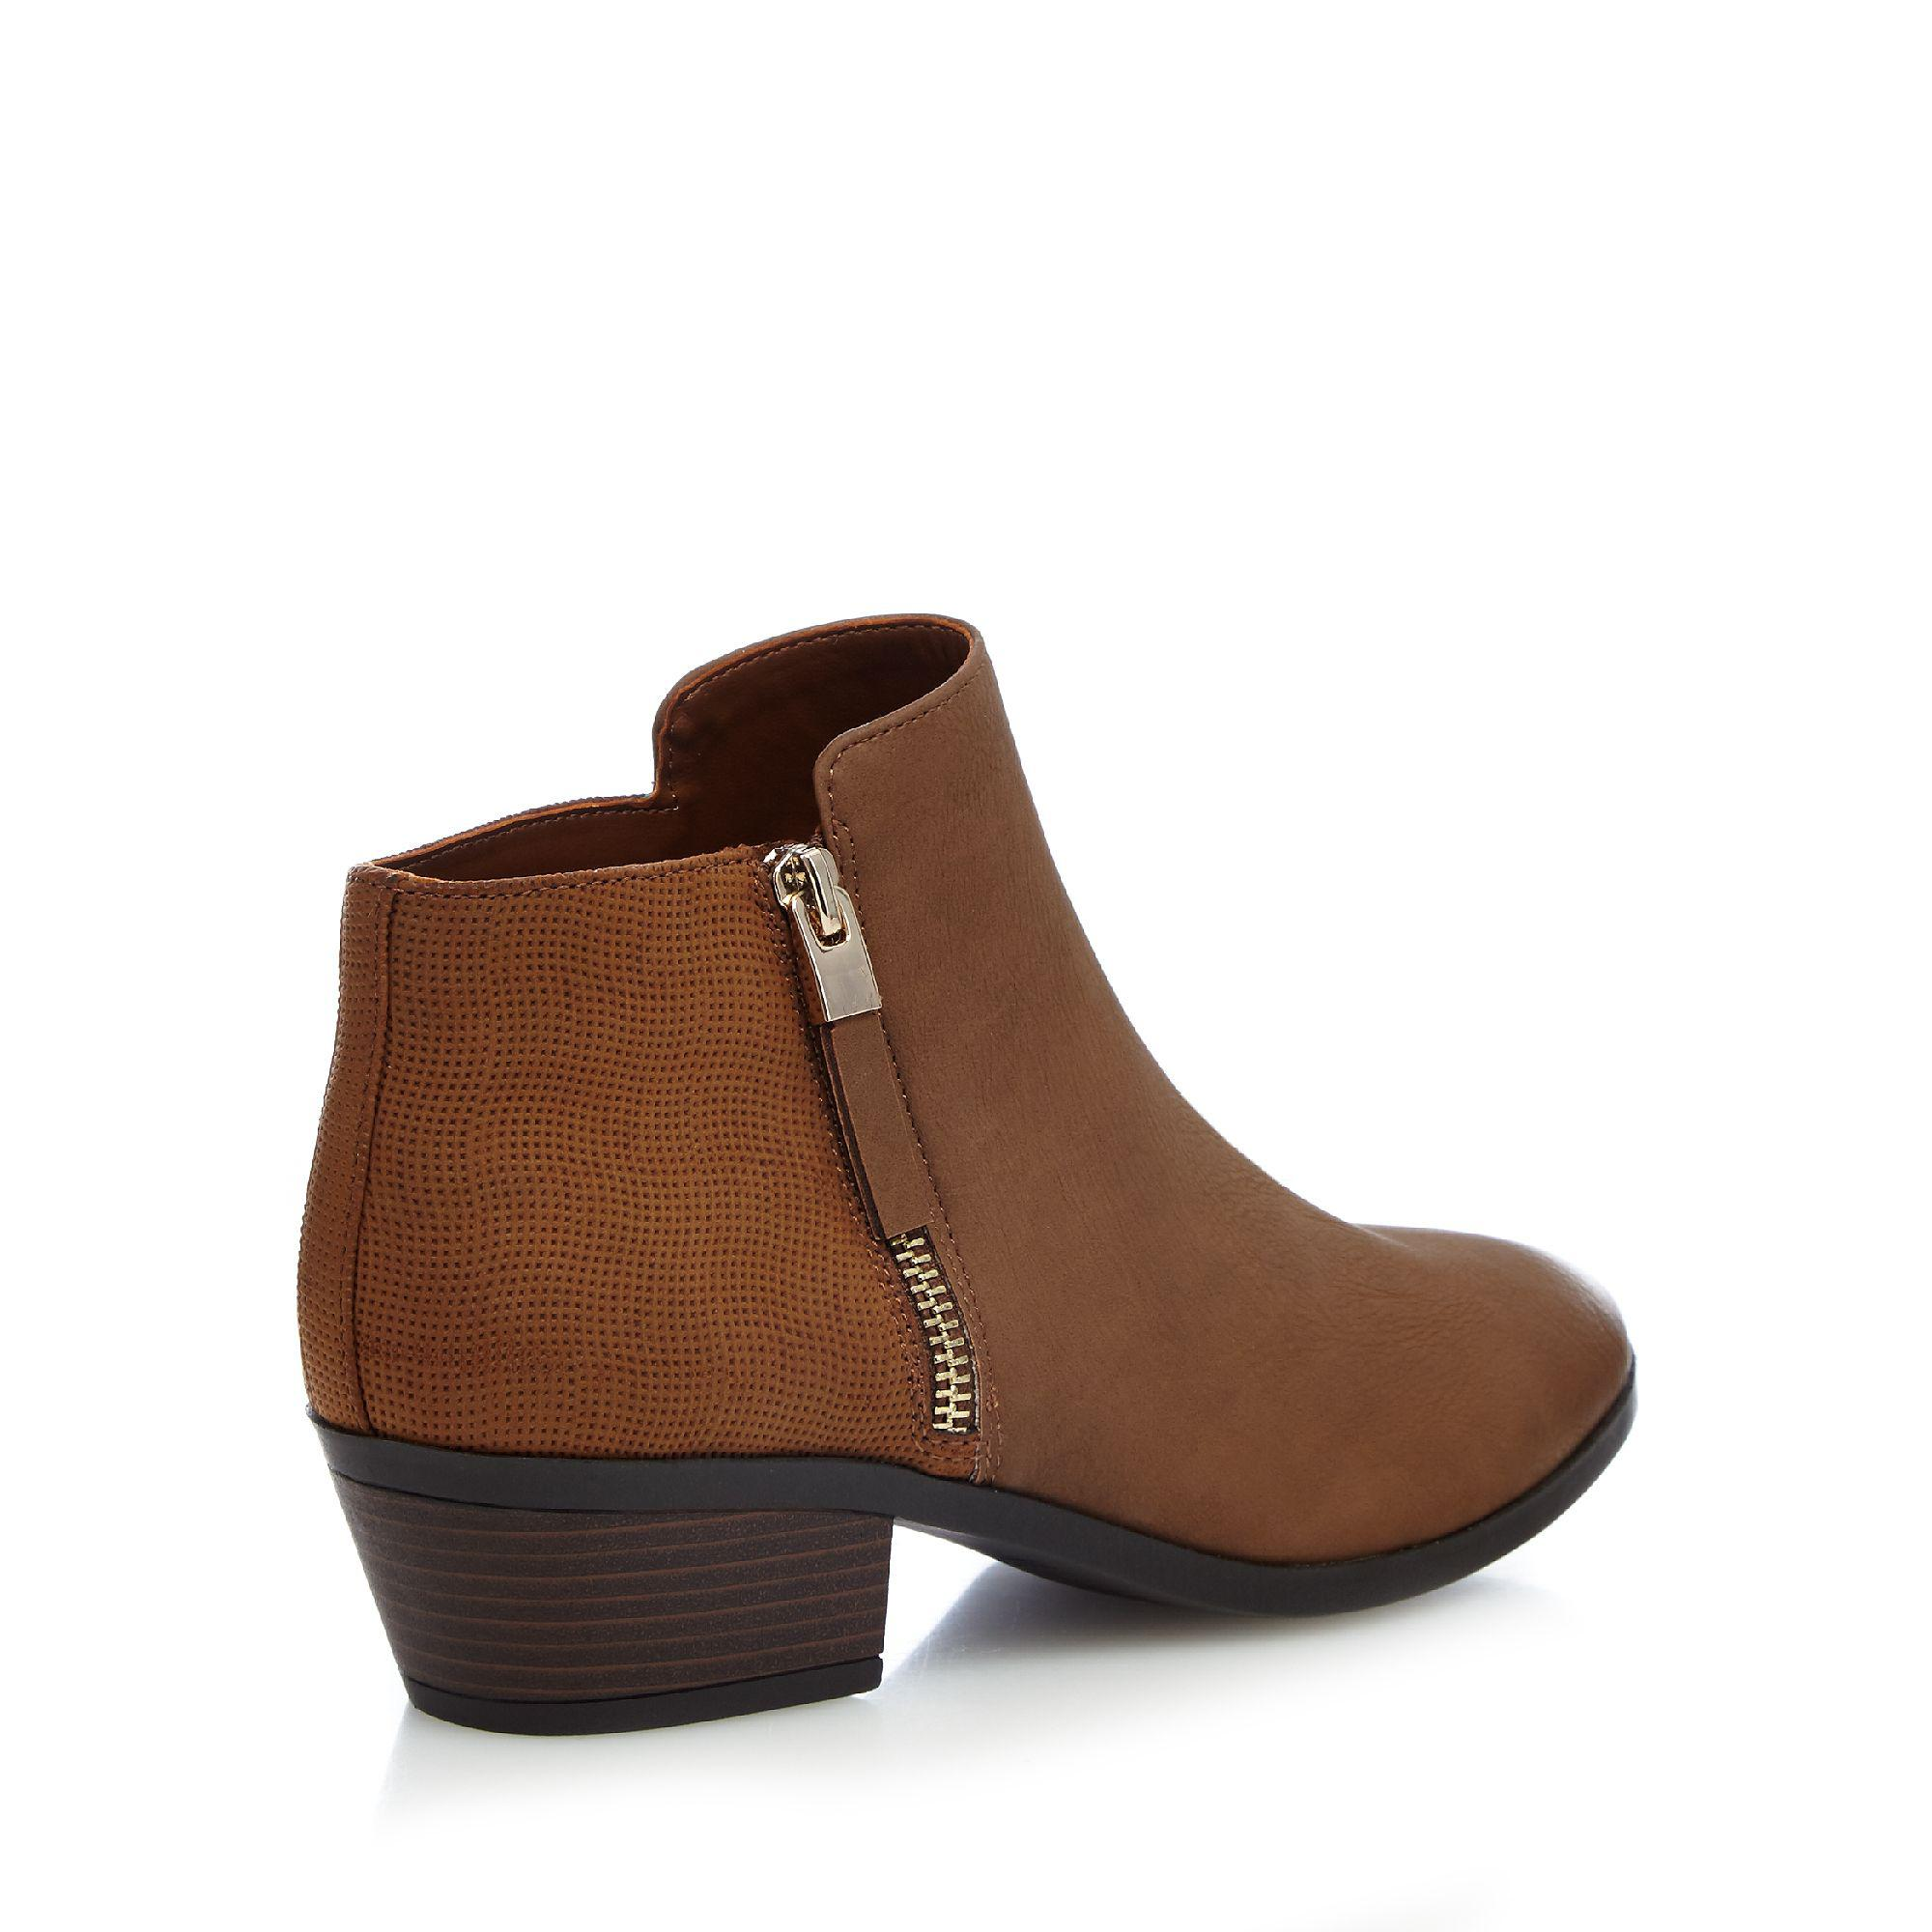 Call It Spring Tan 'gunson' Mid Block Heel Ankle Boots in Brown